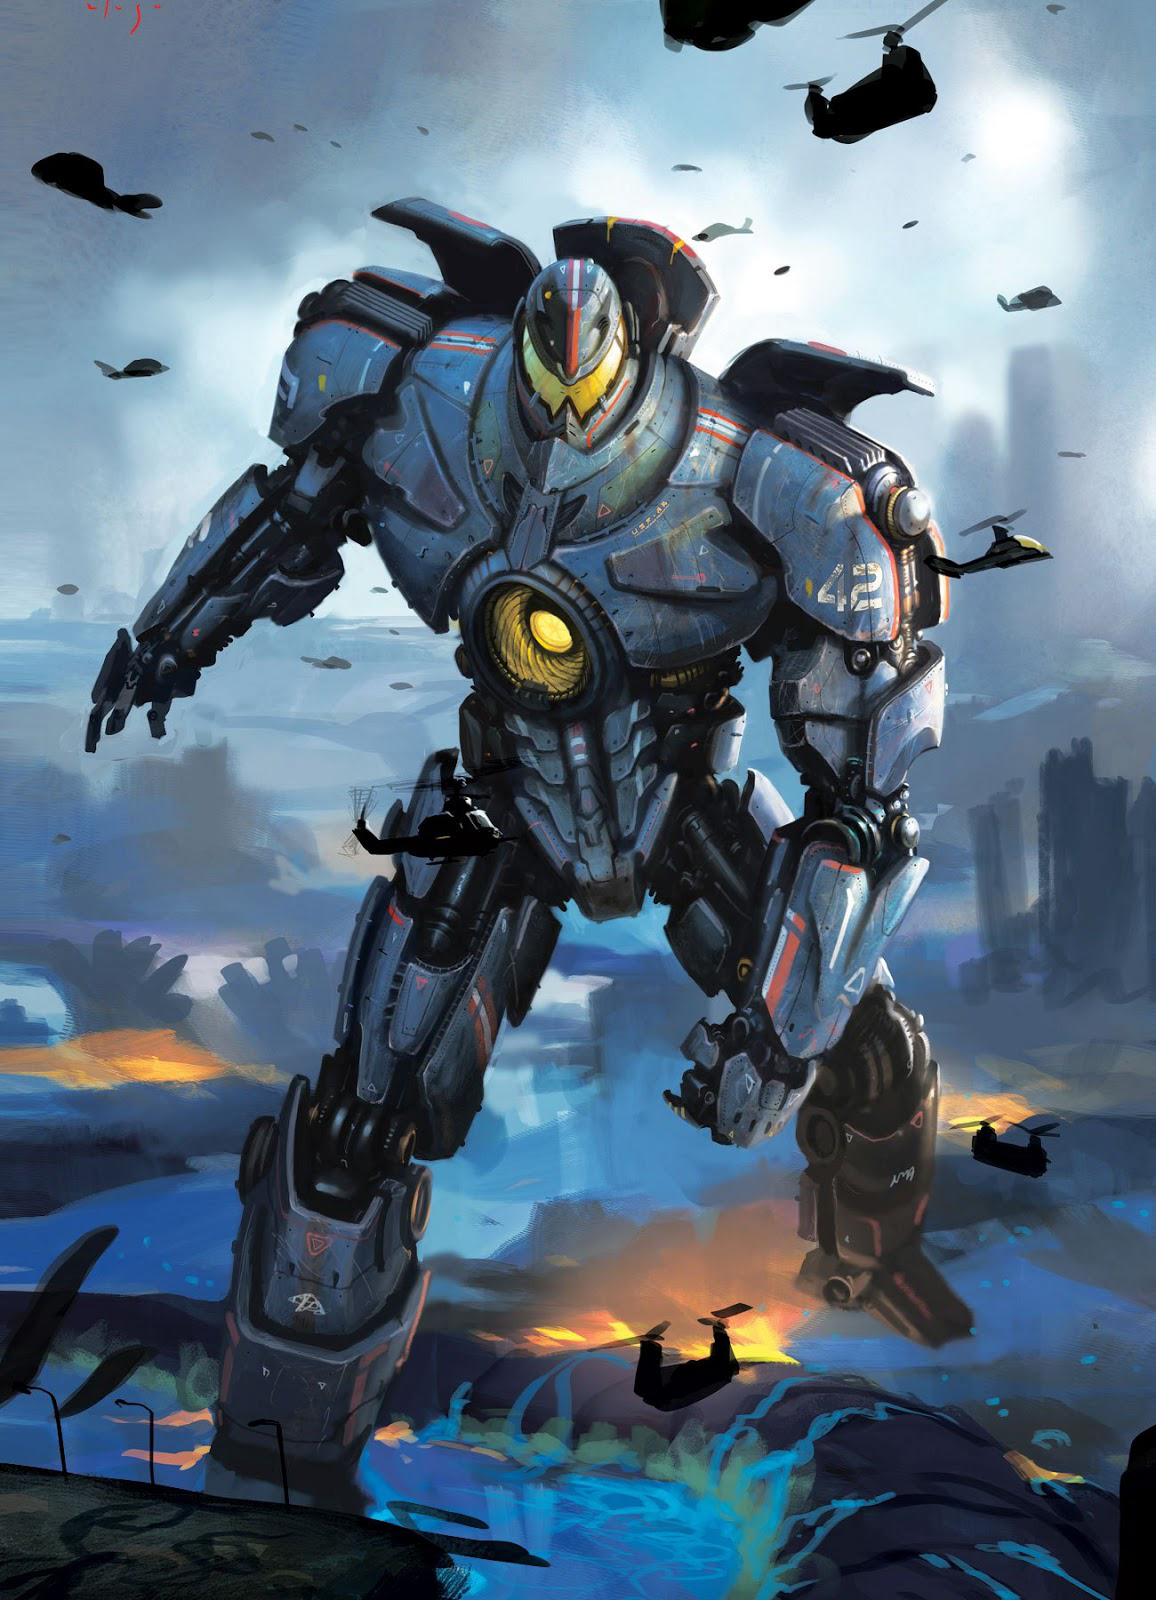 Pacific Rim Concept Art Is Awesome Even Without The Movie ... Pacific Rim Jaeger Concept Art